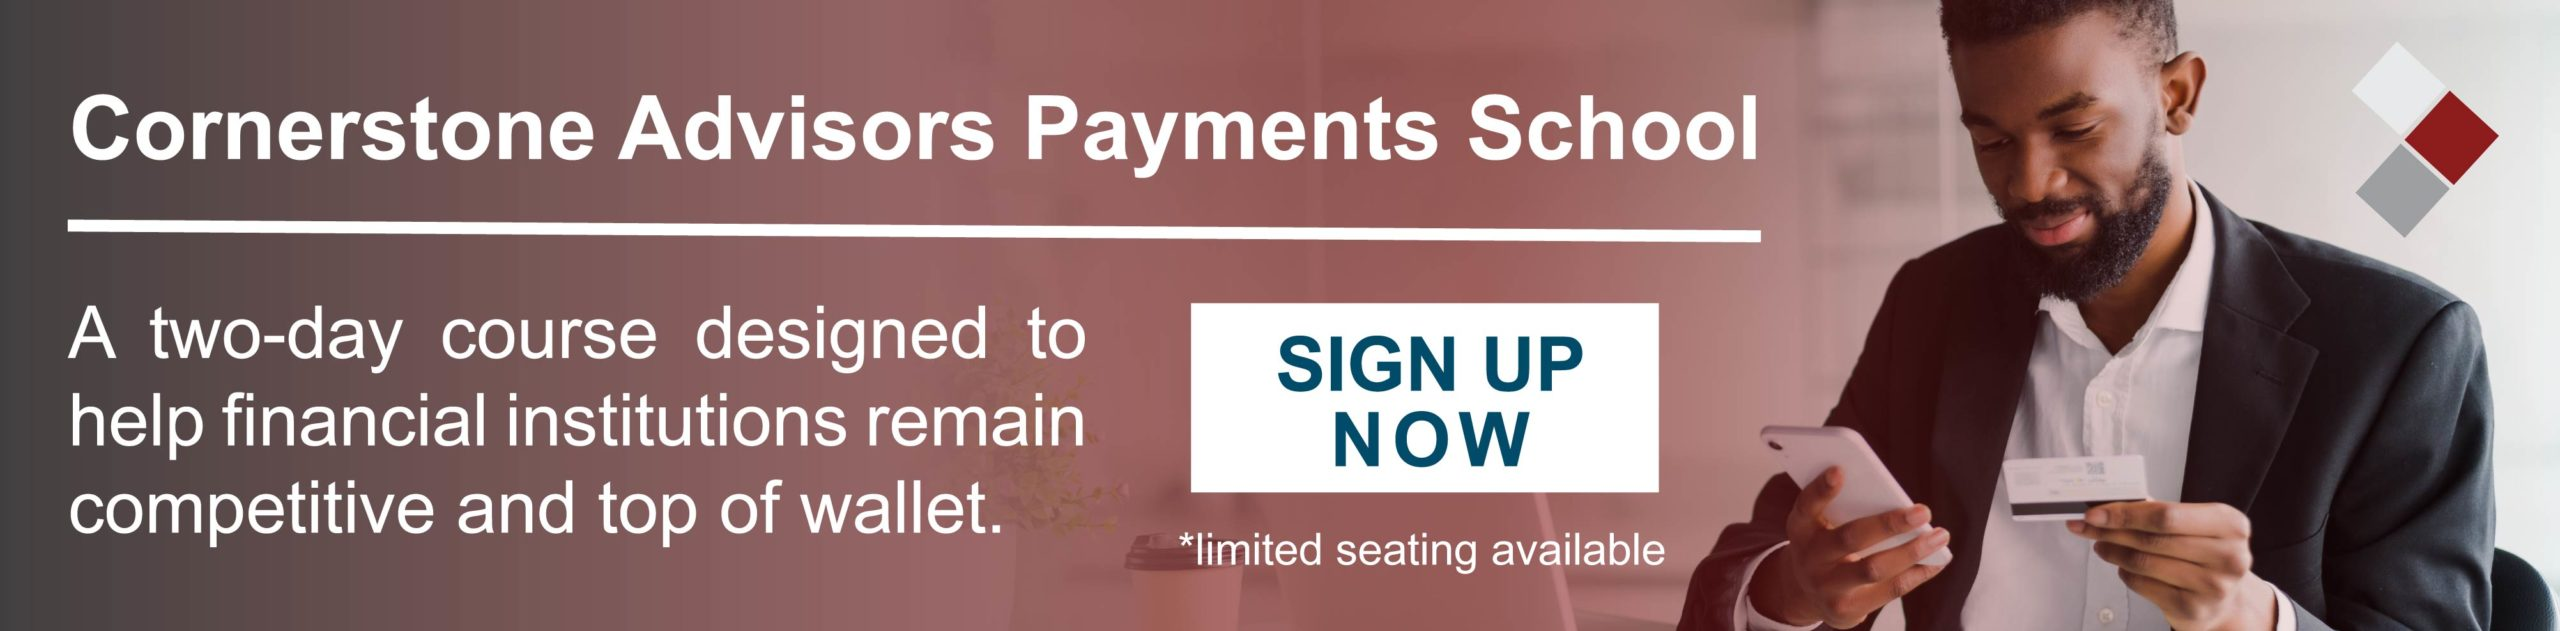 Payments-School_Banner_DK4-scaled